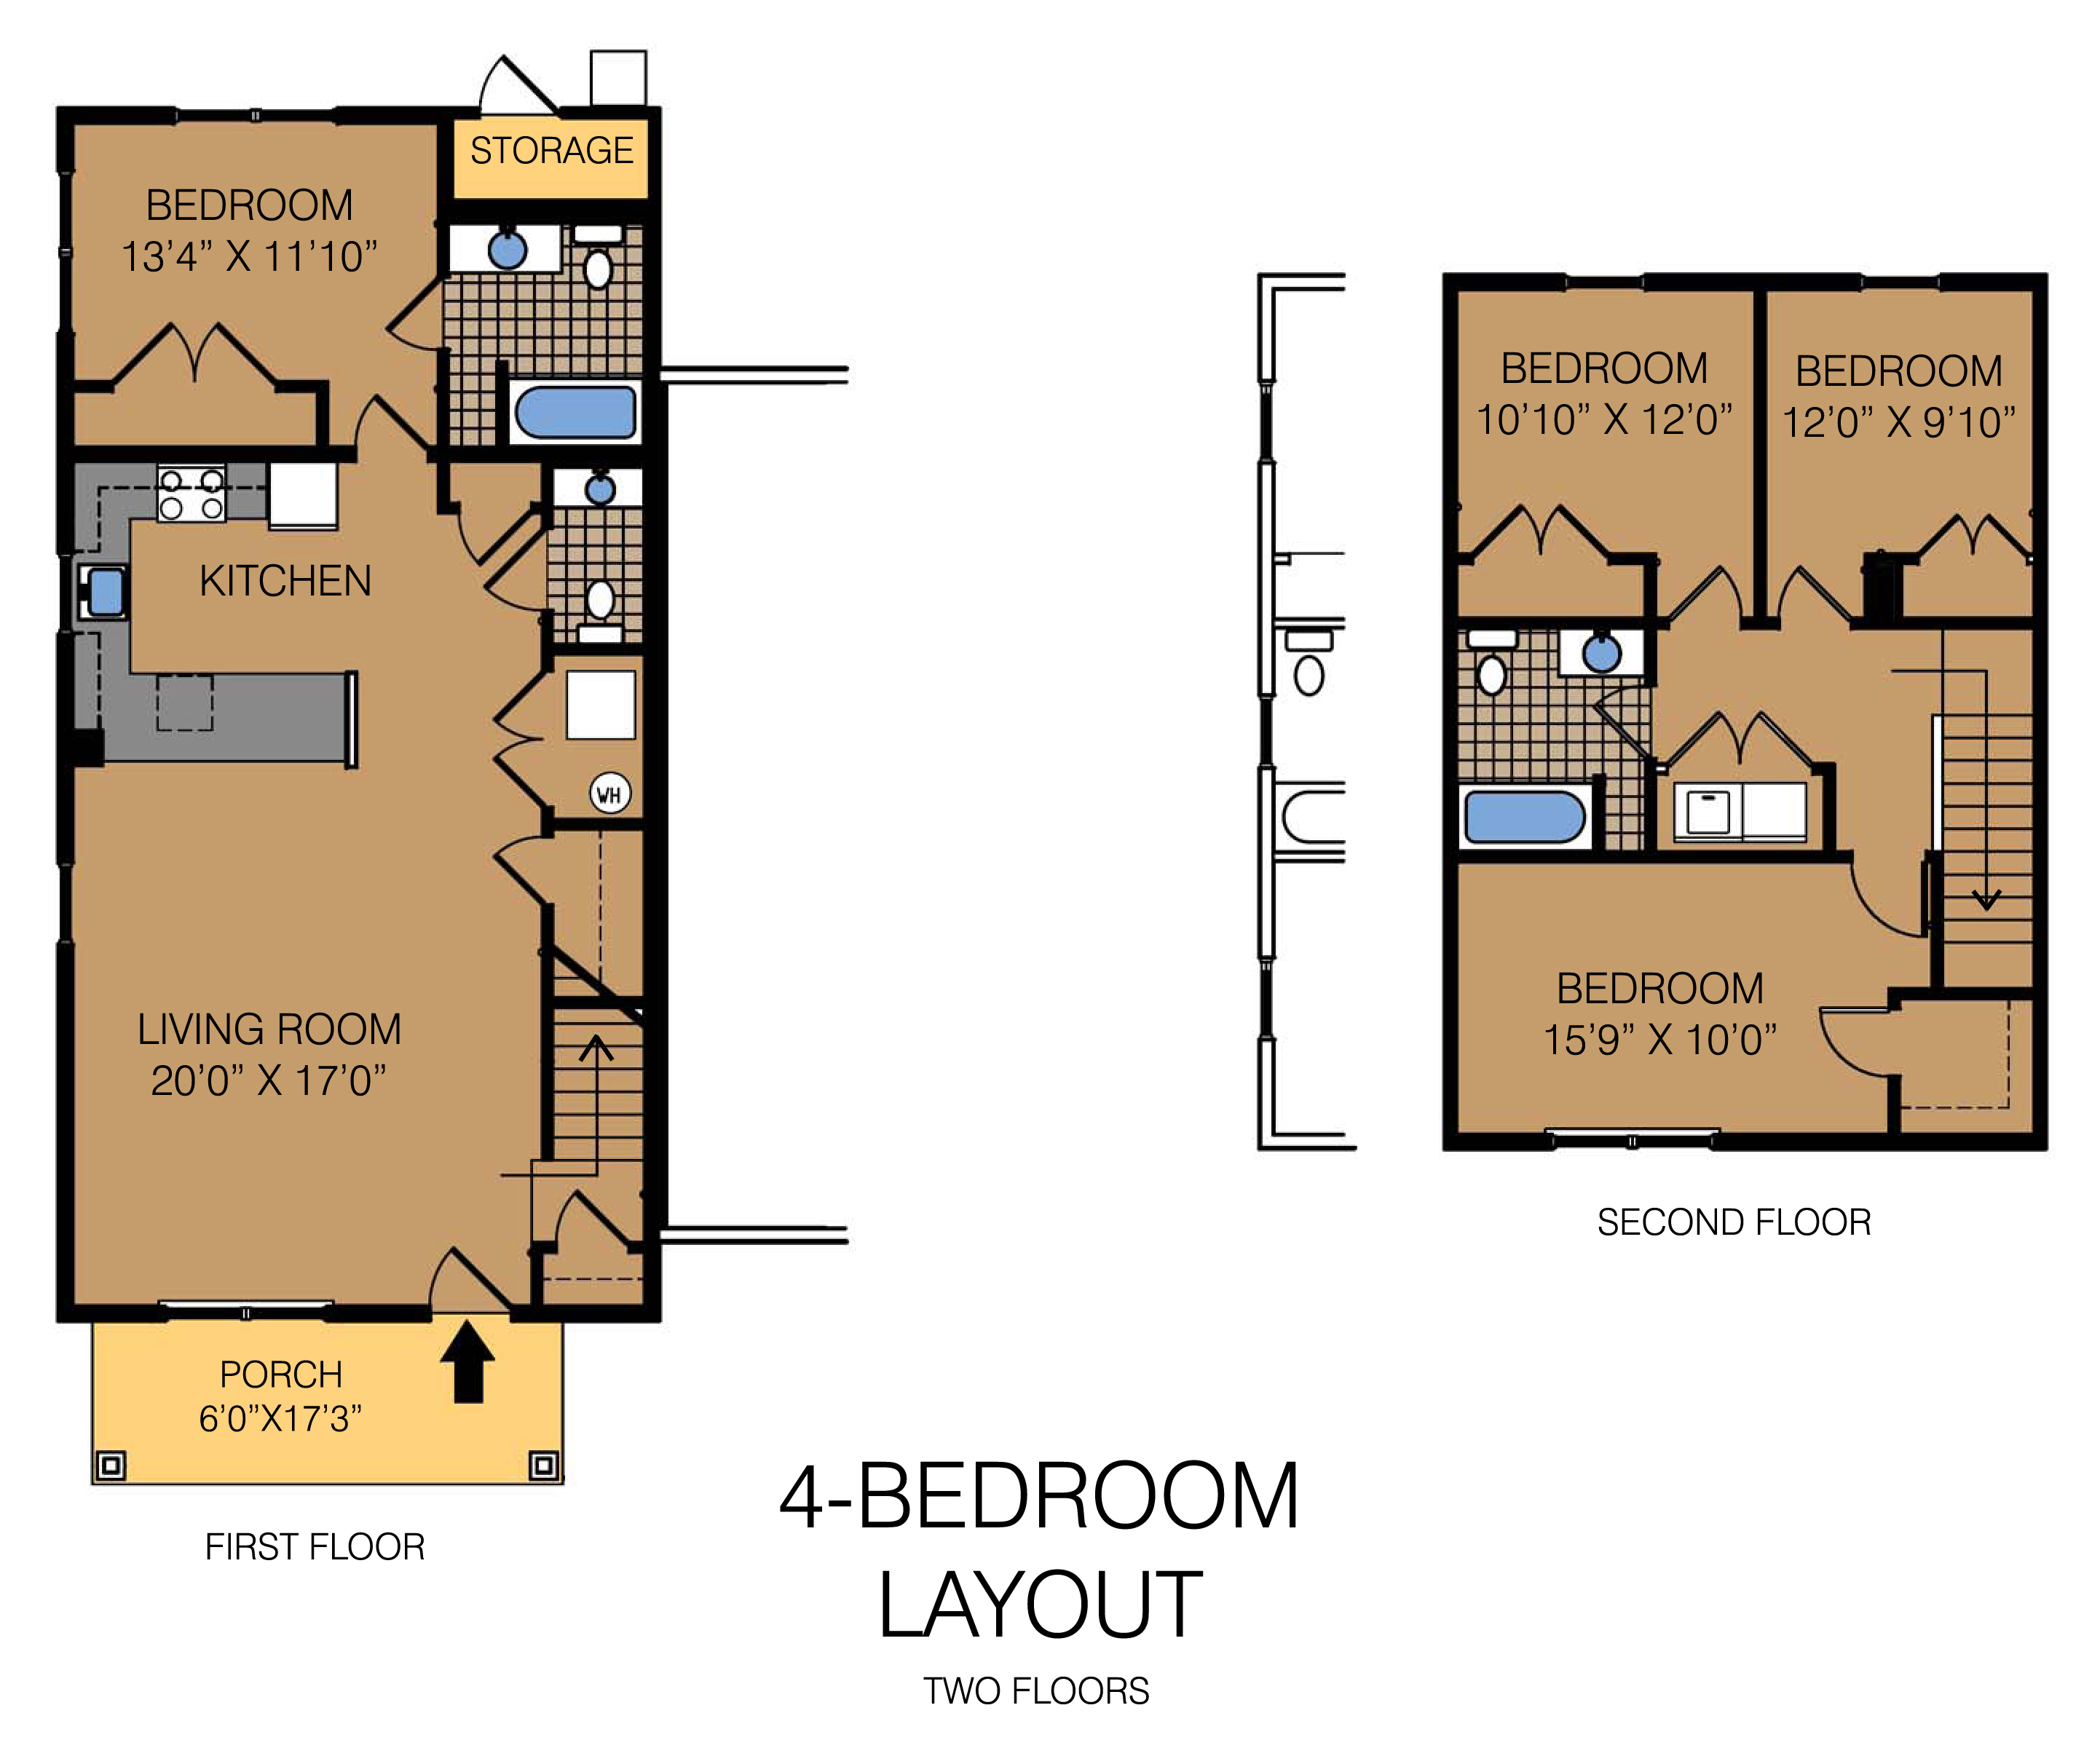 Color Layout 4 Bedroom.jpg (1)